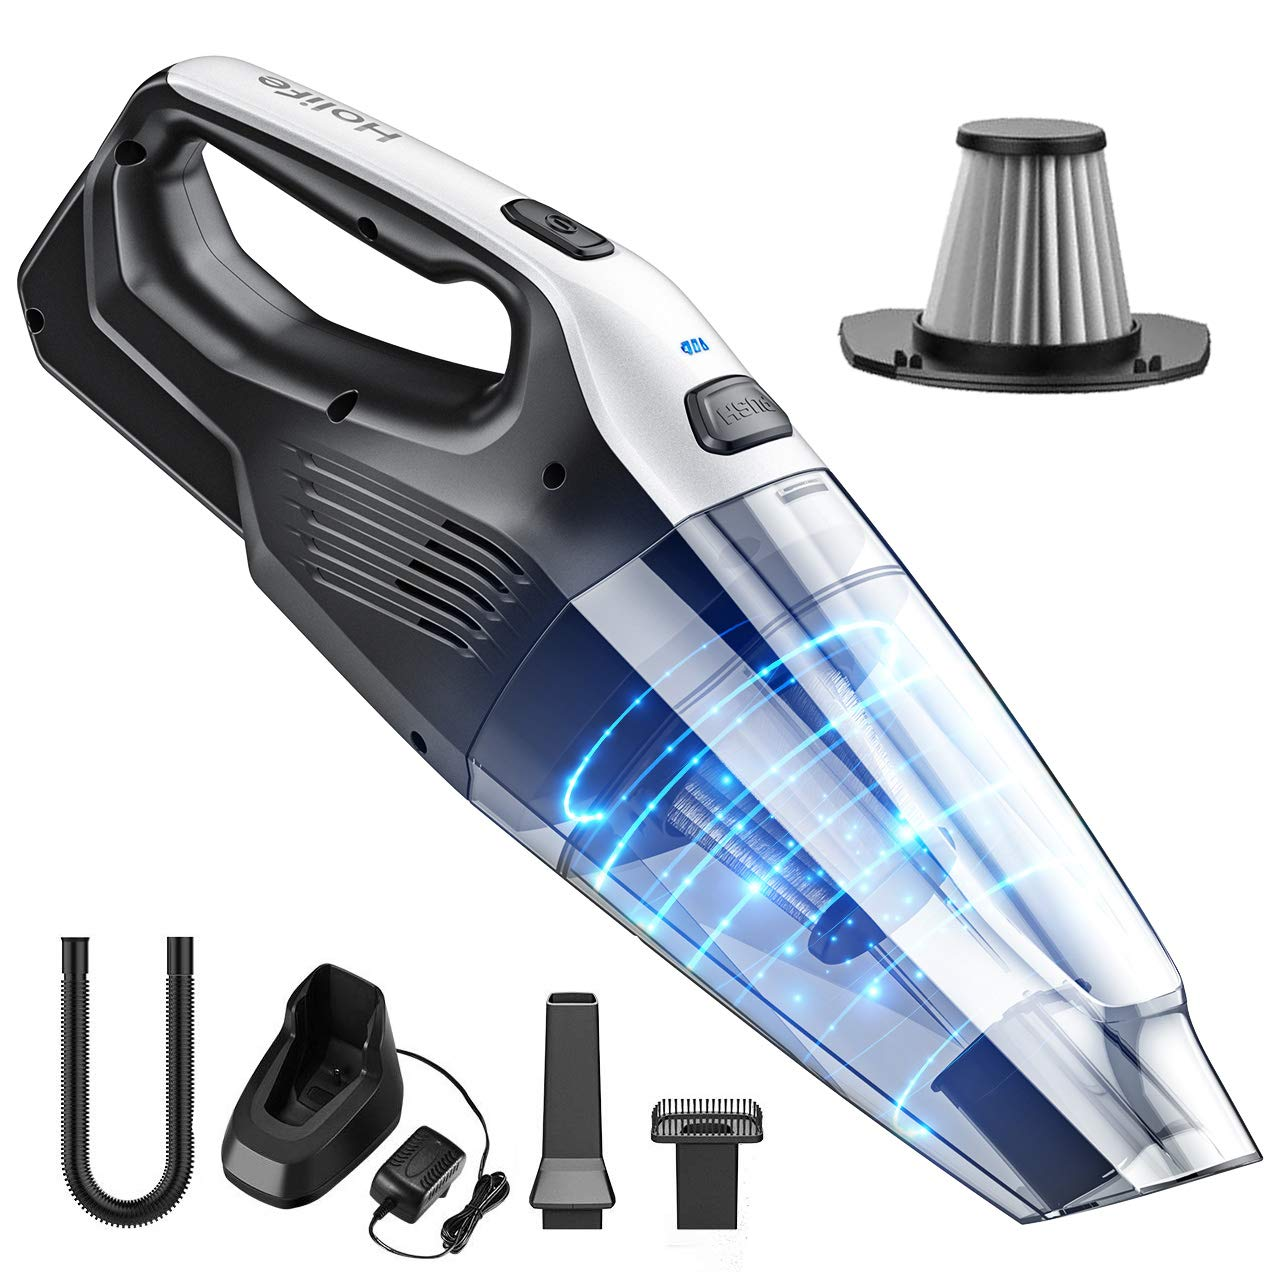 Holife Handheld Cleaner Cordless, 7kpa Portable Hand Vacuum with Replaceable Battery and Stainless Steel Filter Quick Charge Tech for Pet, Hair, Home, Office, Car Cleaning, Middle, Grey